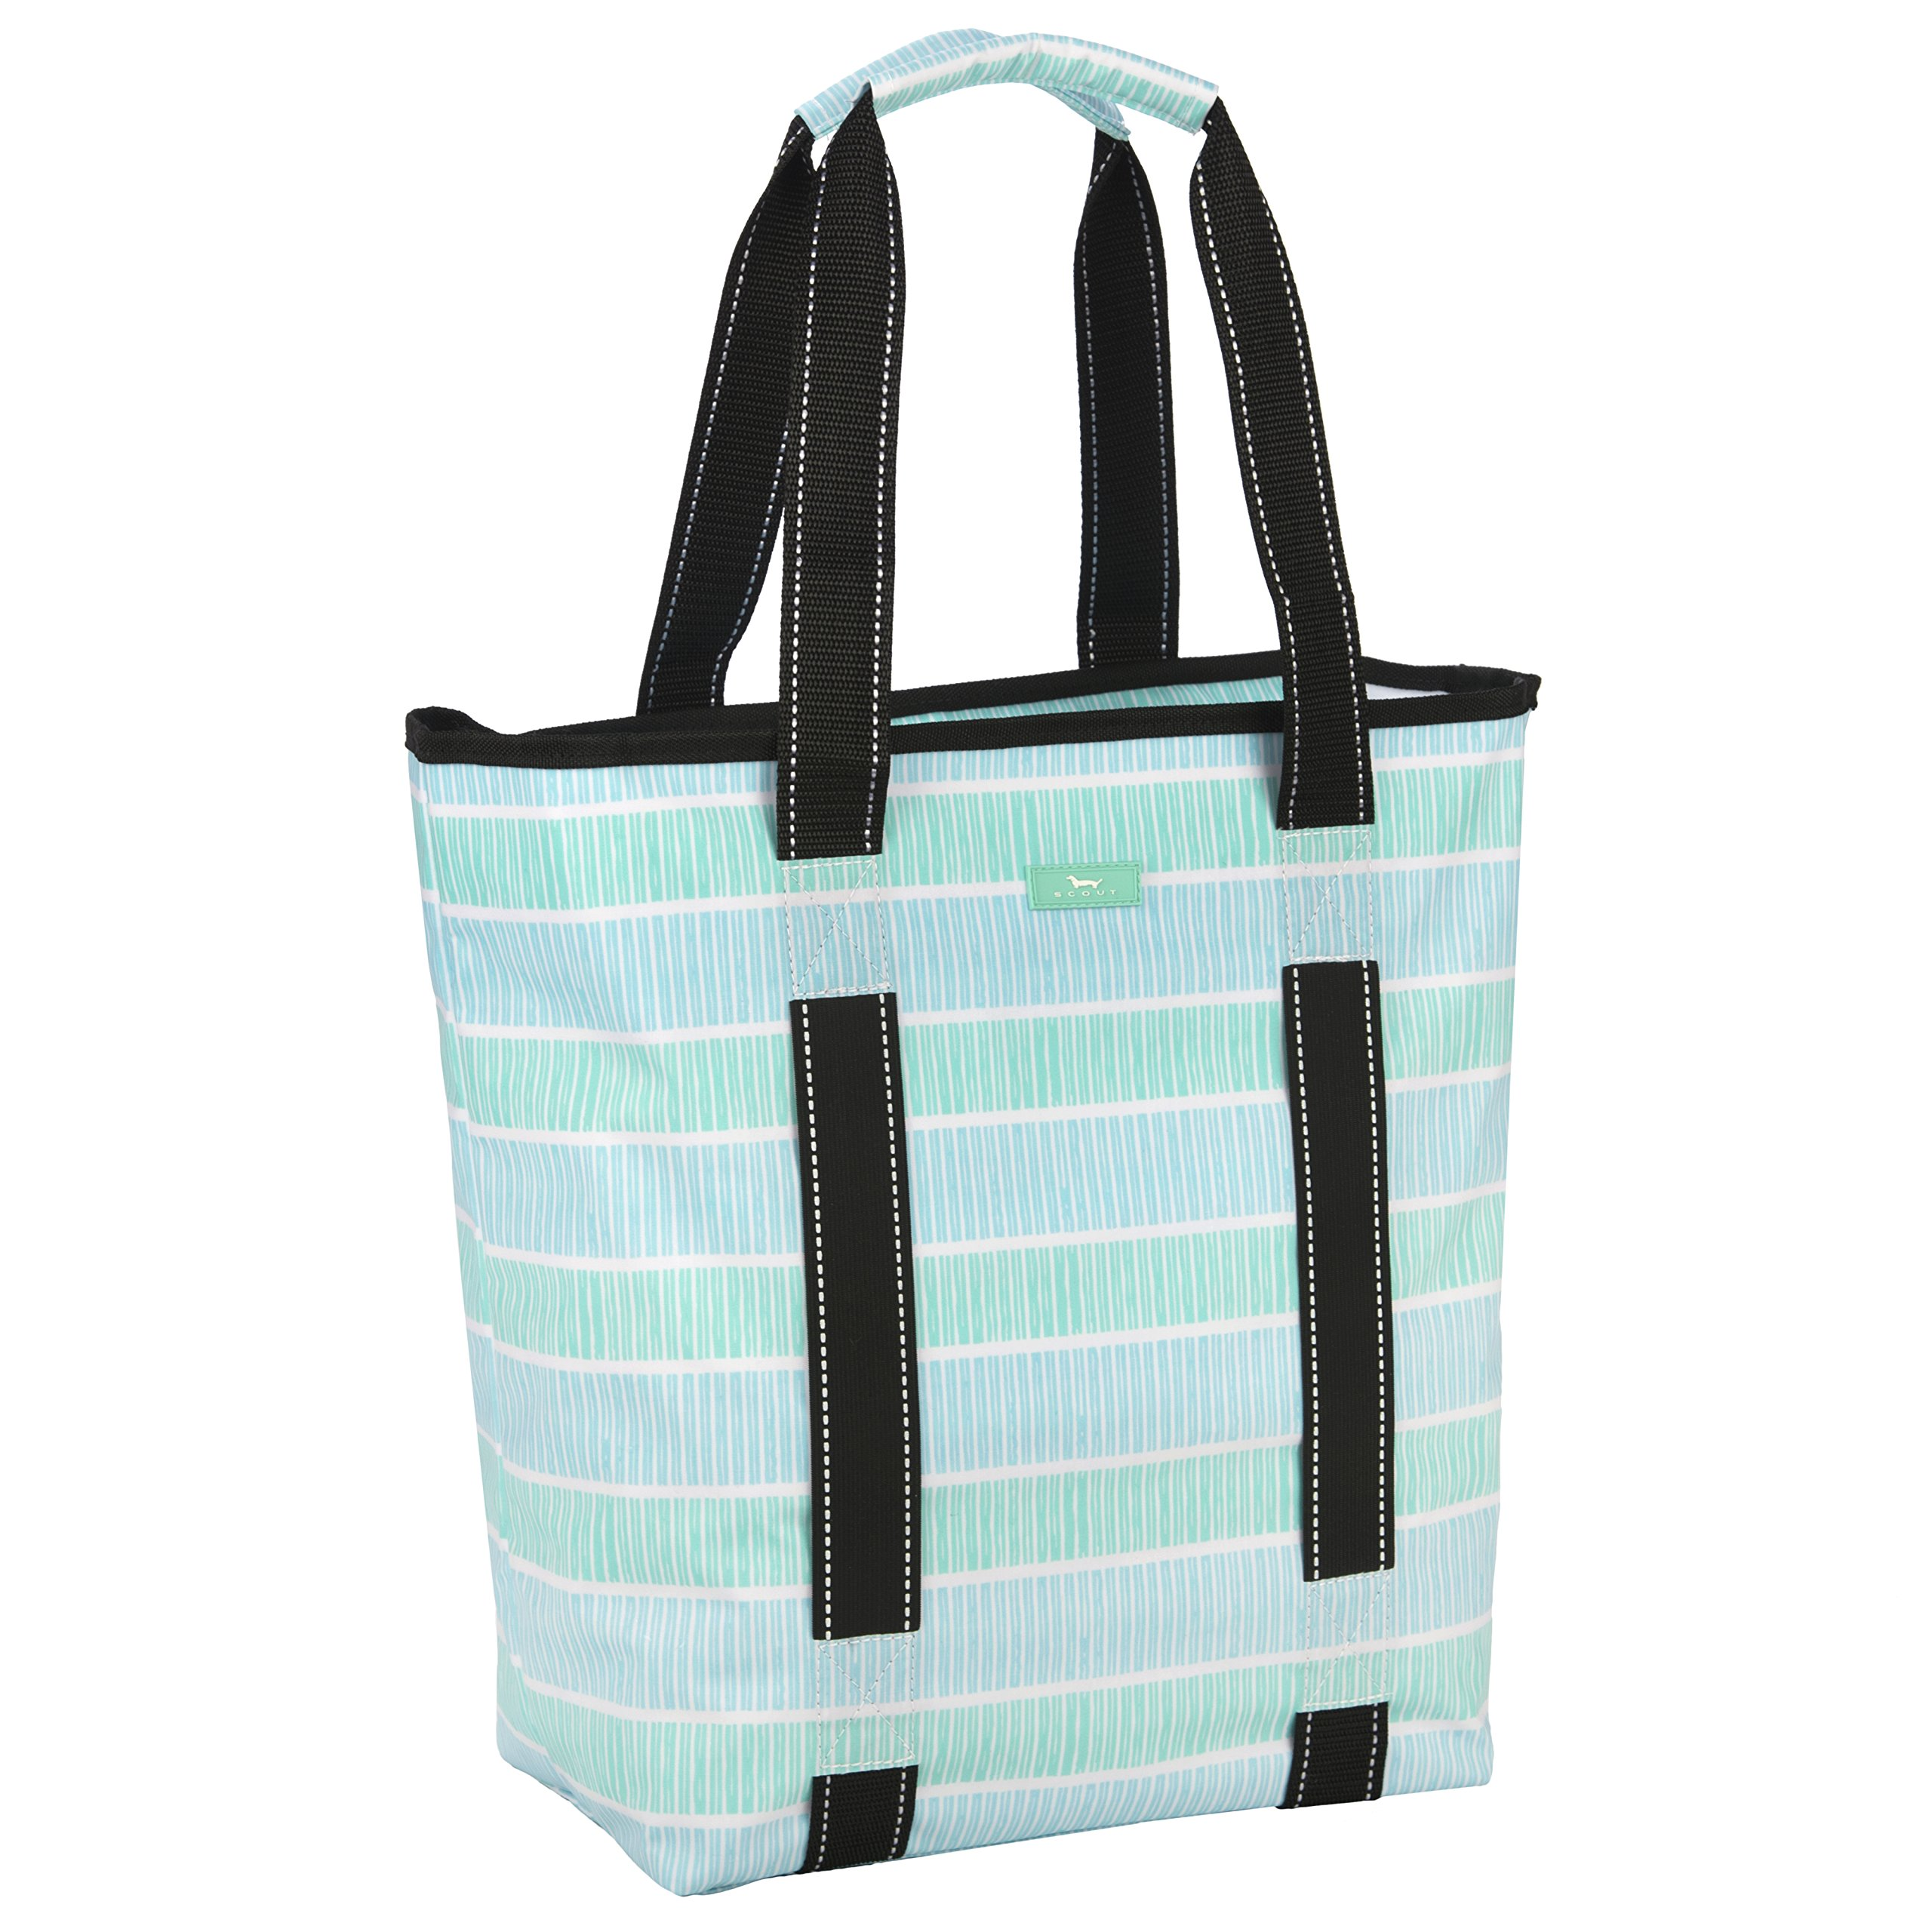 SCOUT Fit Kit Gym Tote Bag, Elastic Band Fits Yoga Mat or Towel, Water Resistant, Zips Closed, Shallow End